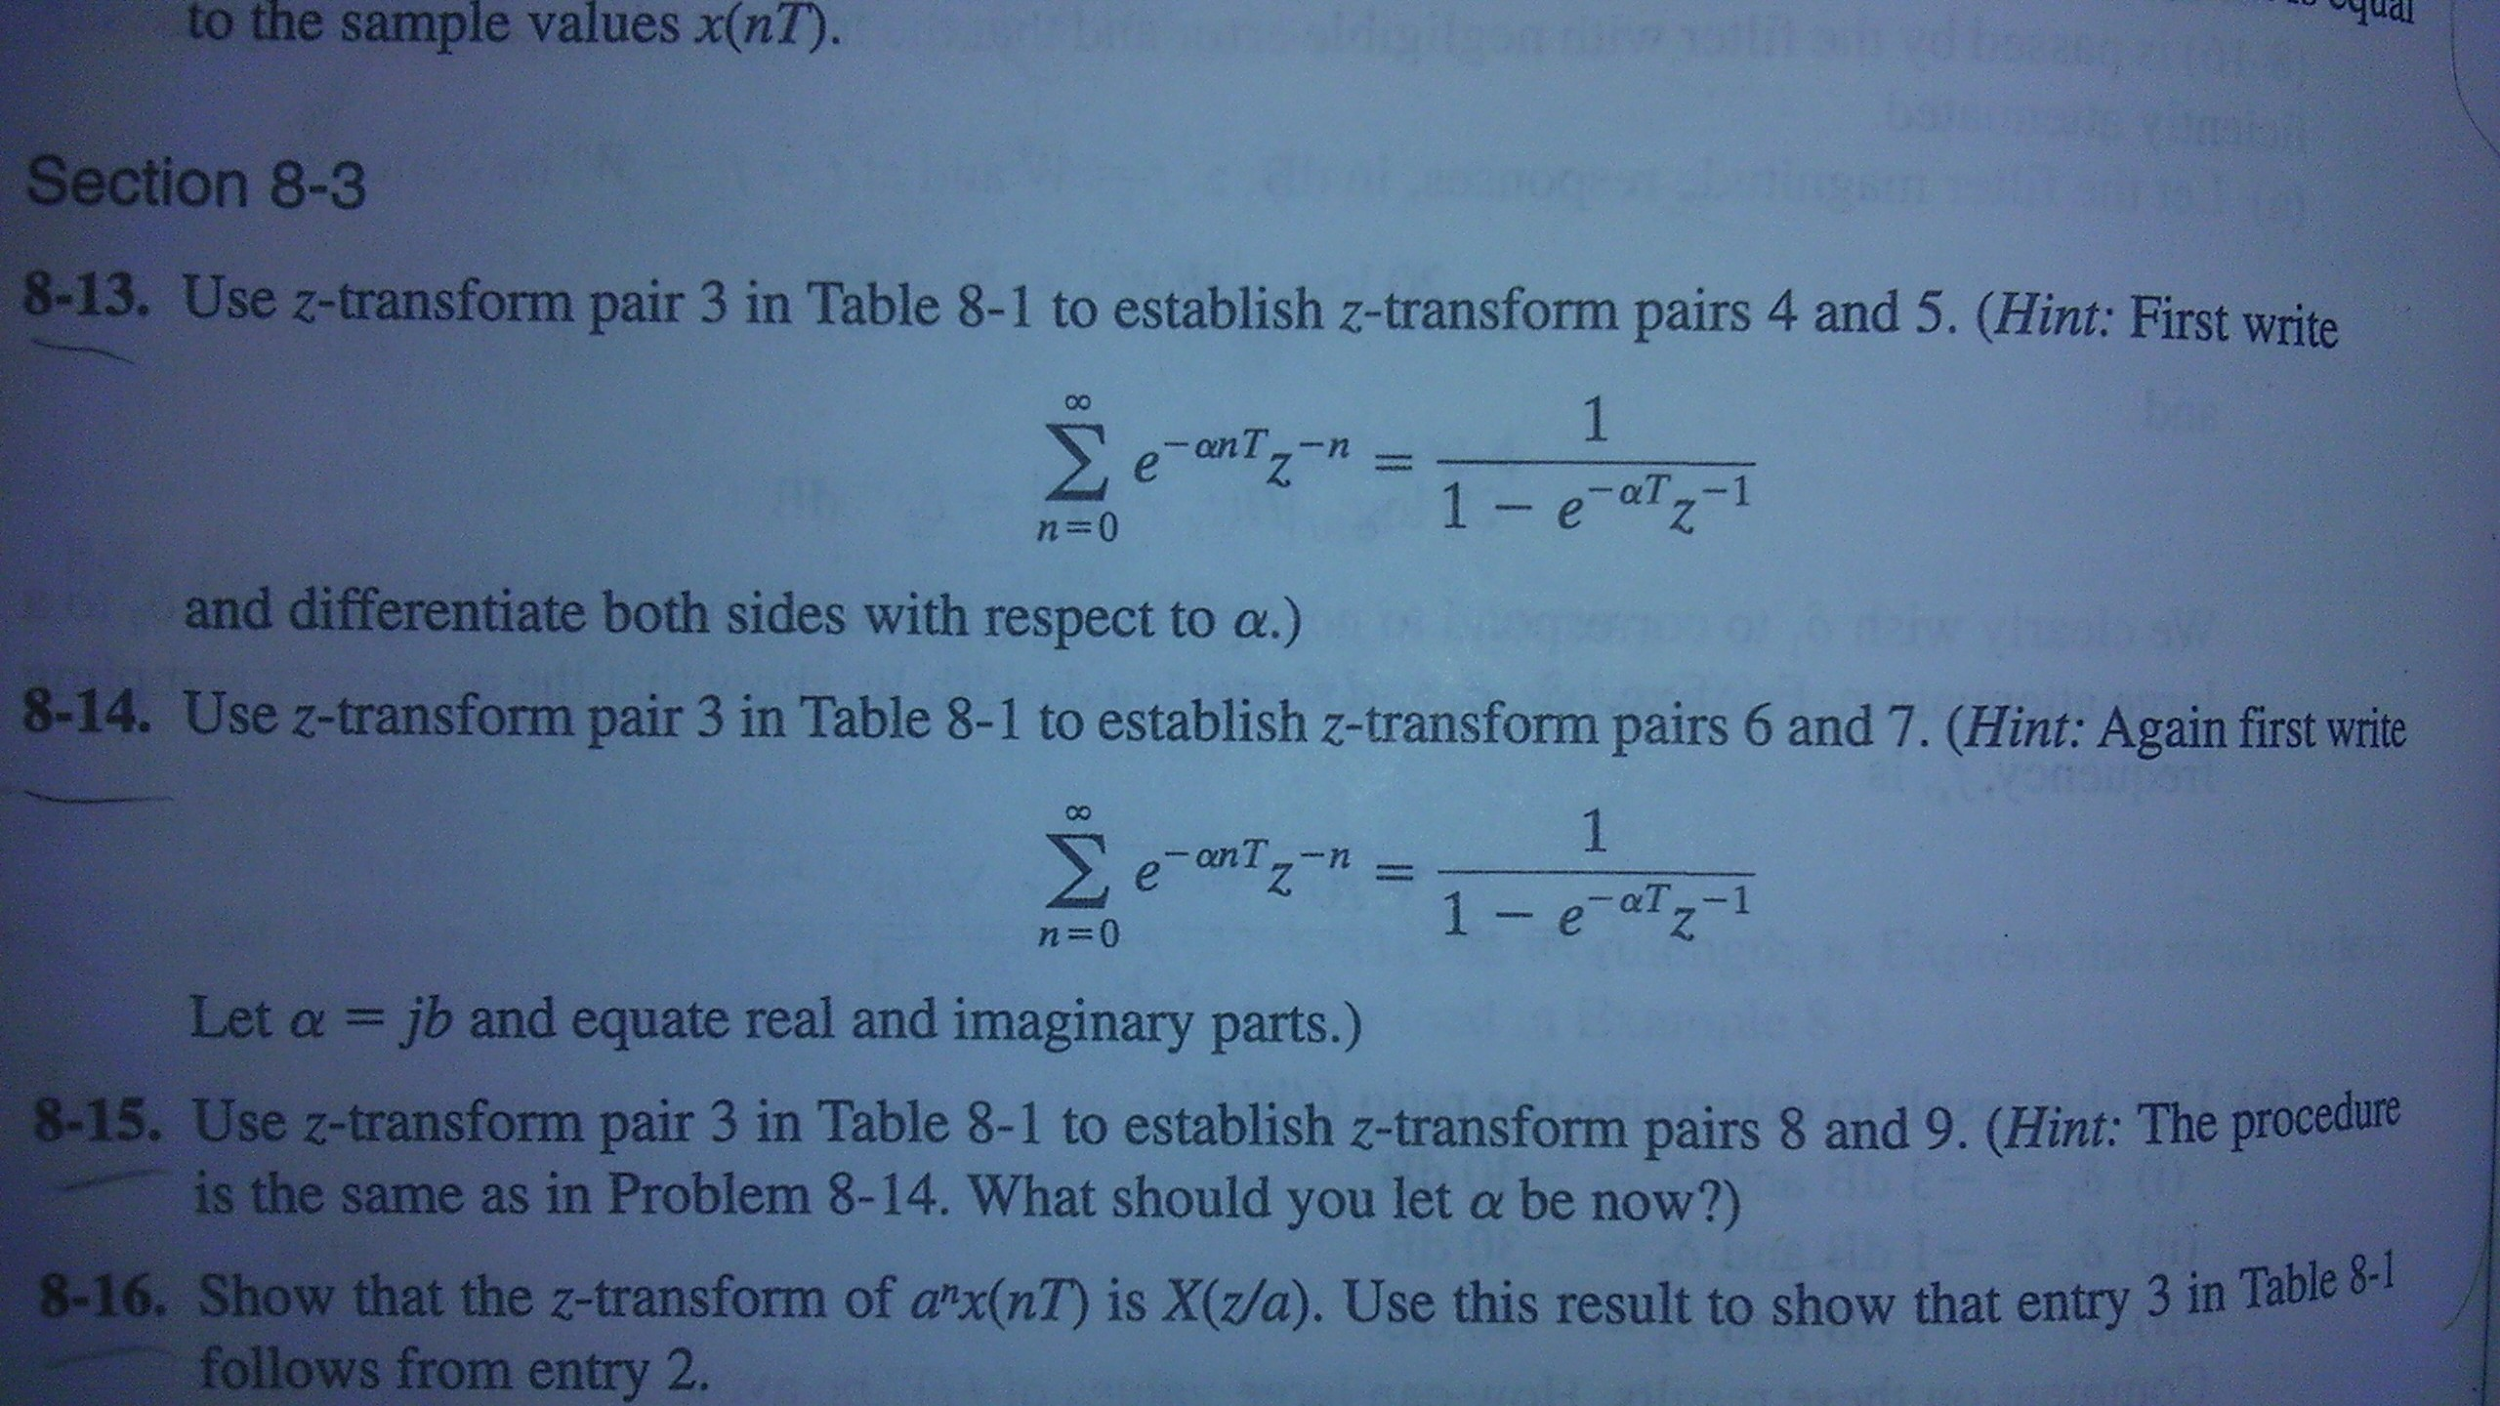 Use z-transform pair 3 in Table 8-1 to establish z